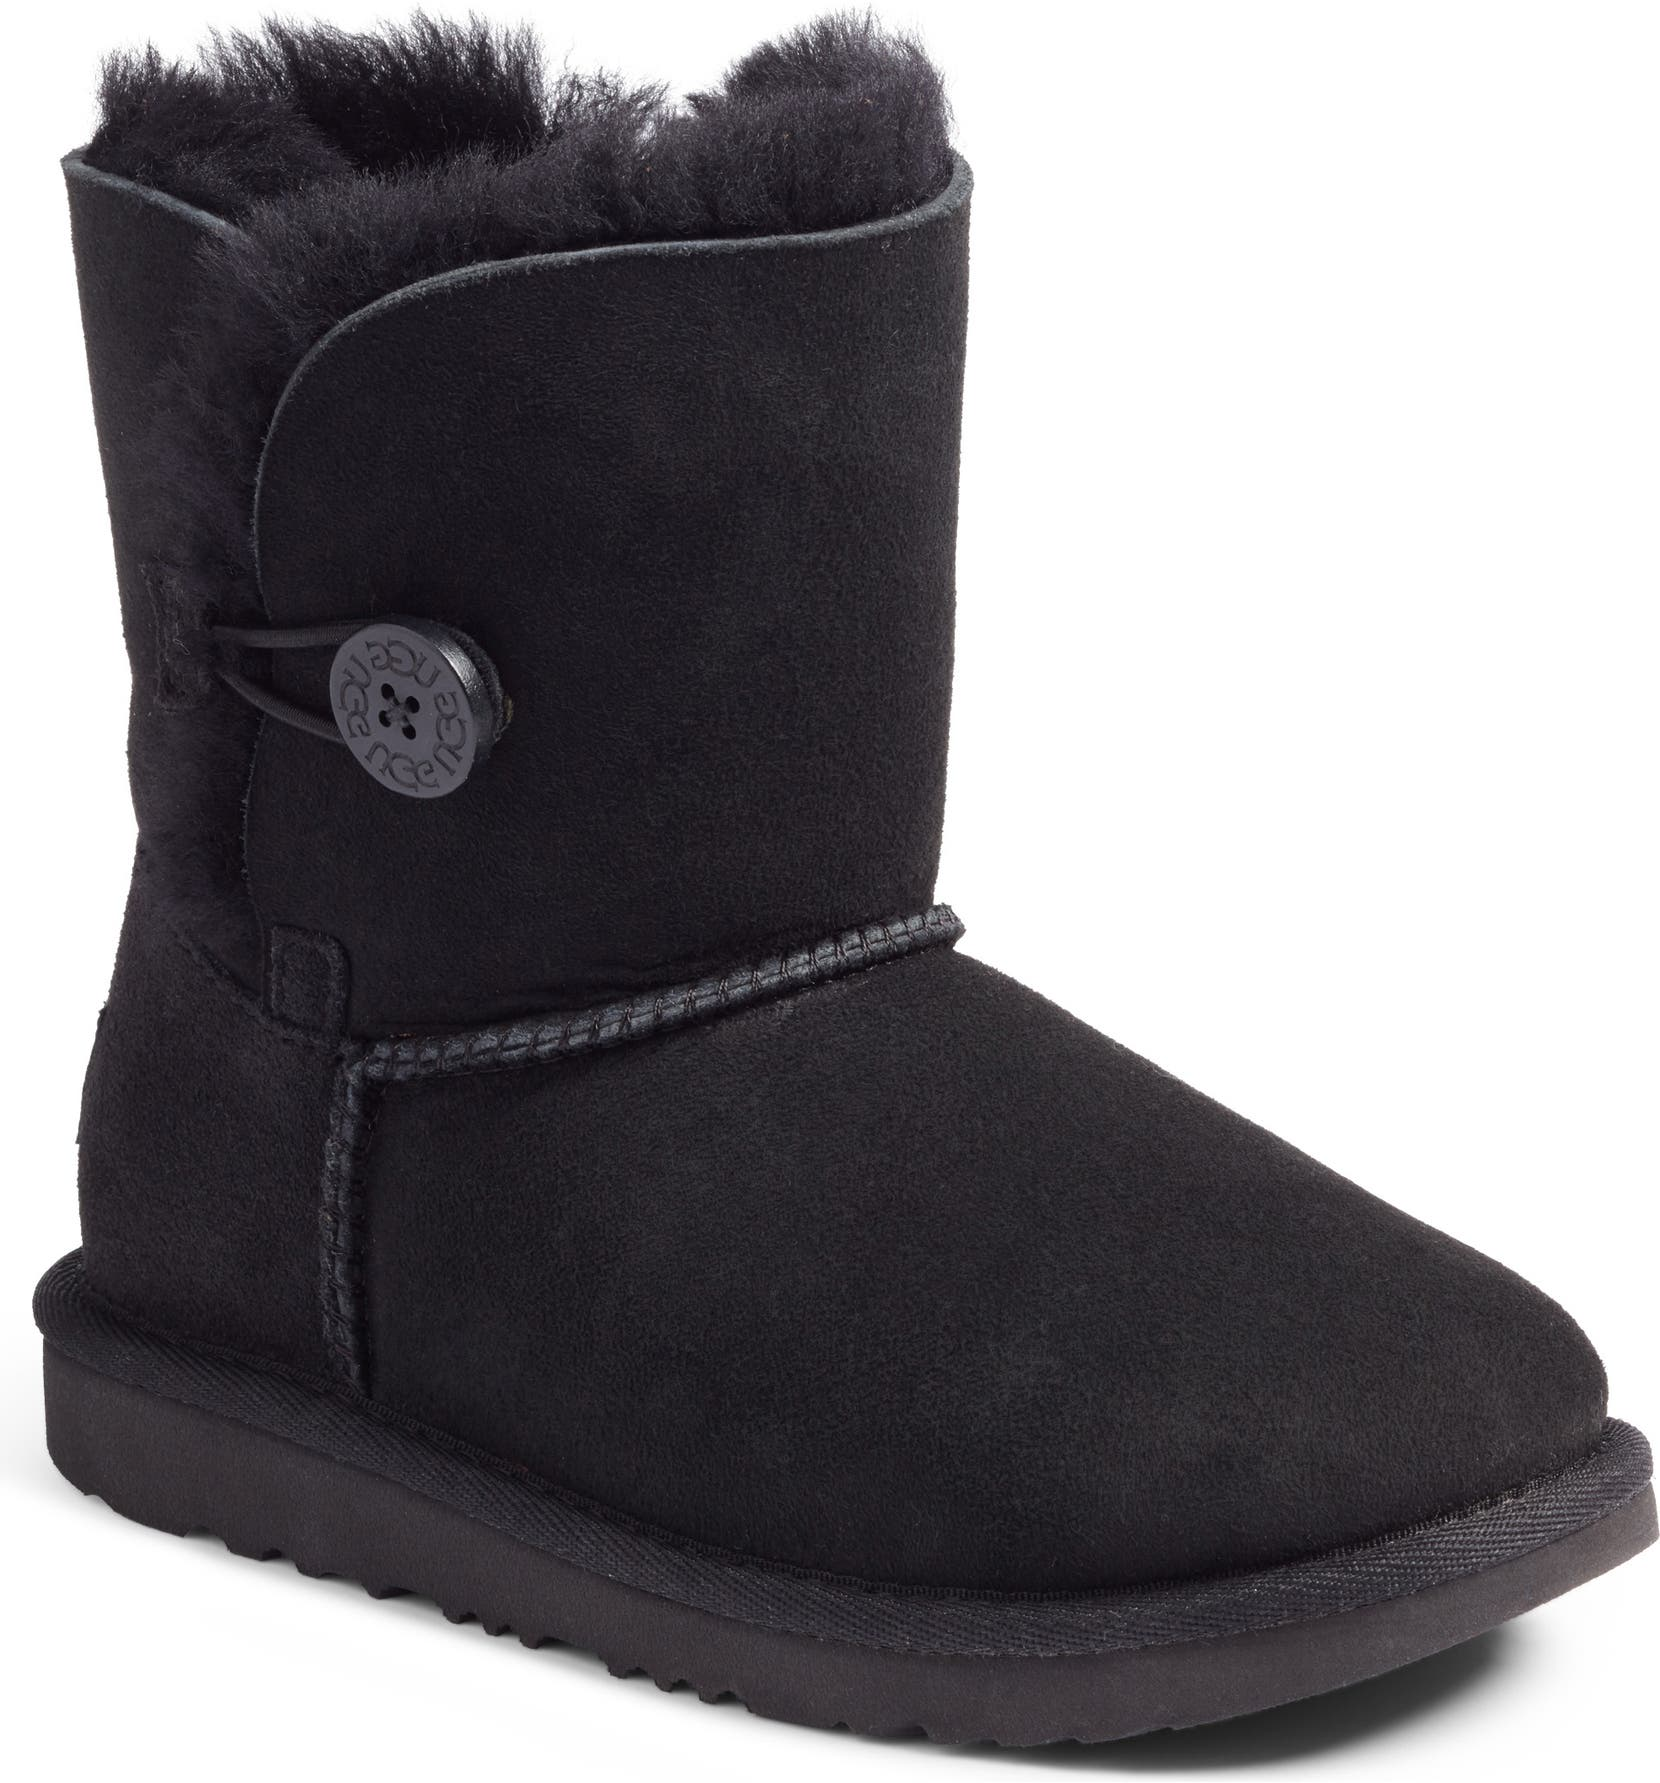 056f0f4e8 UGG® Bailey Button II Water Resistant Genuine Shearling Boot (Walker,  Toddler, Little Kid & Big Kid) | Nordstrom